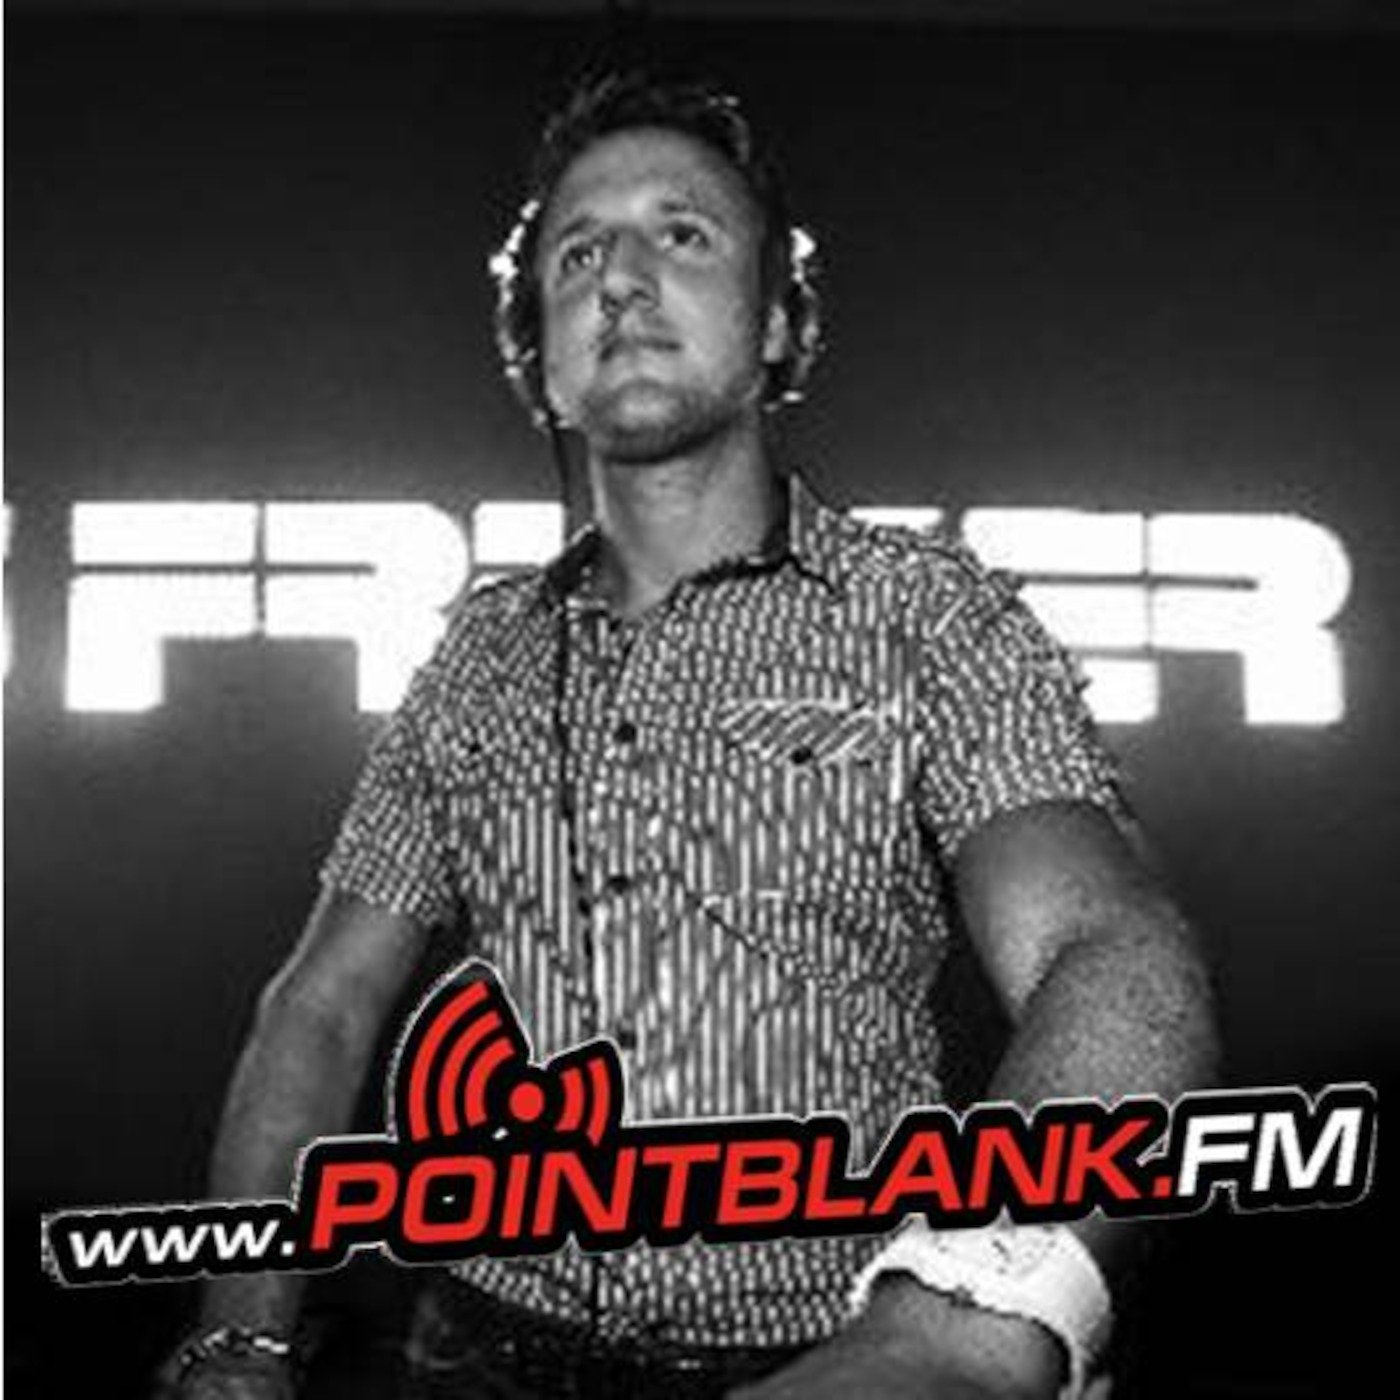 DJ Paul Fricker's Point Blank FM Podcast